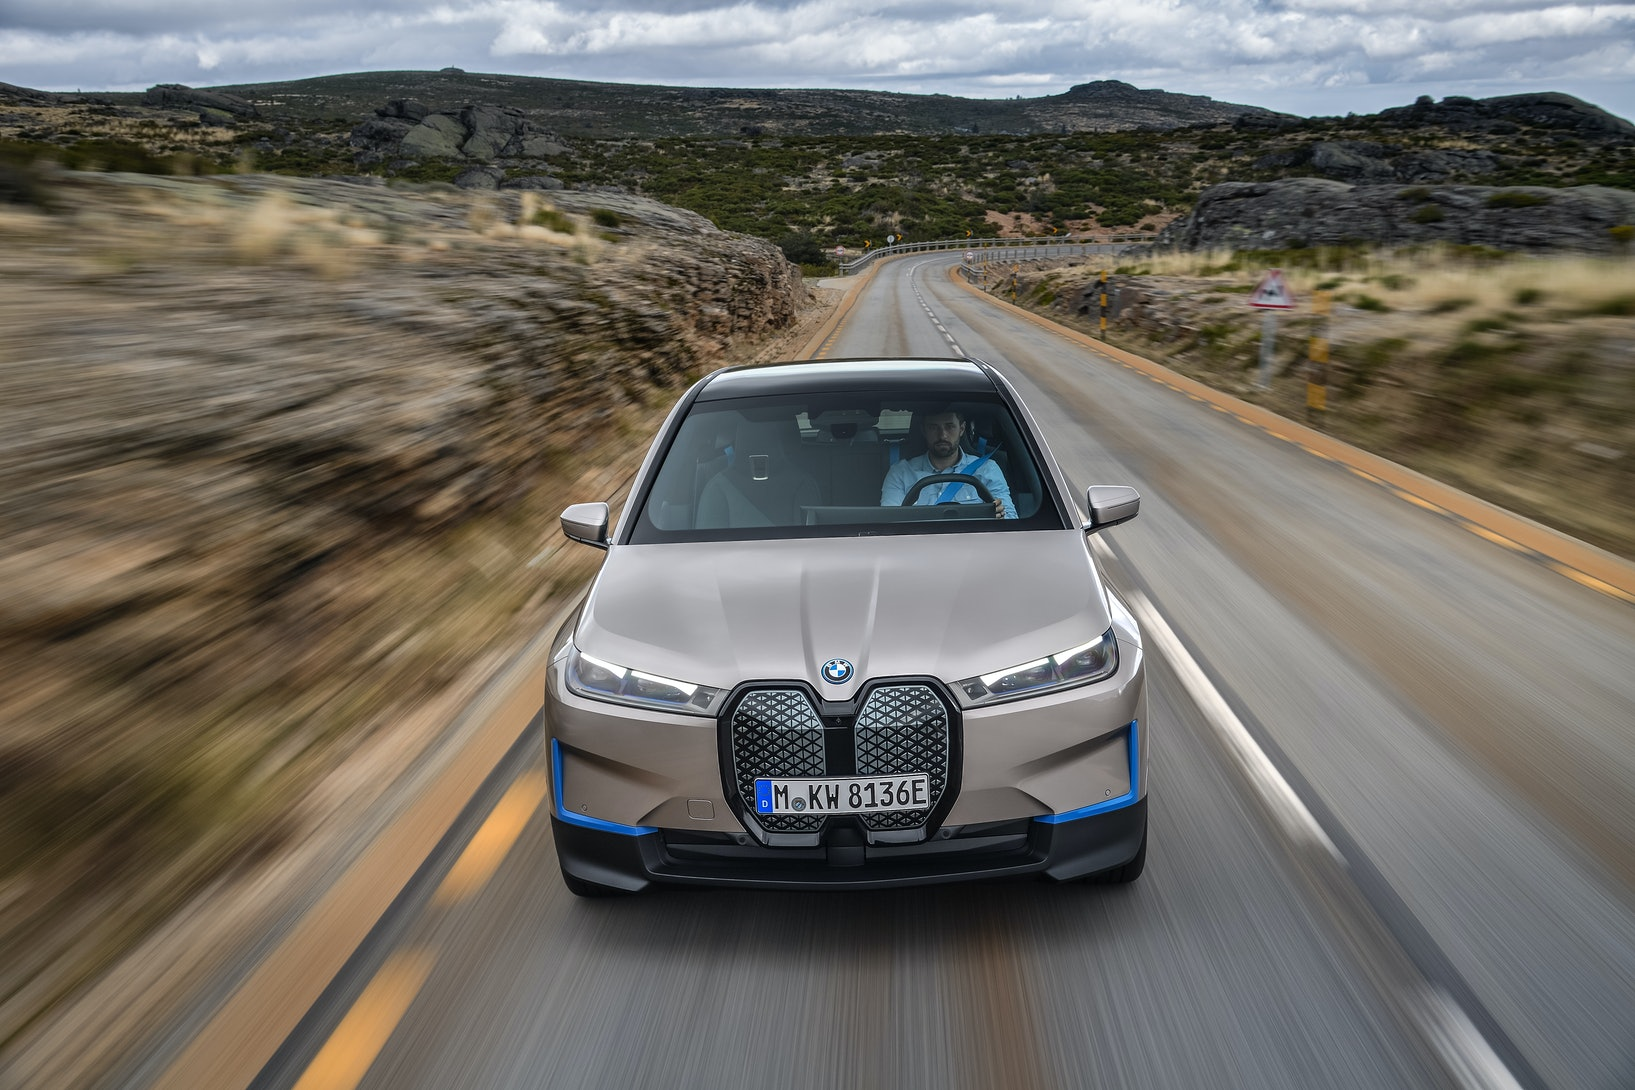 BMW's iX is an all-electric SUV and a template for the company's future electric vehicles.